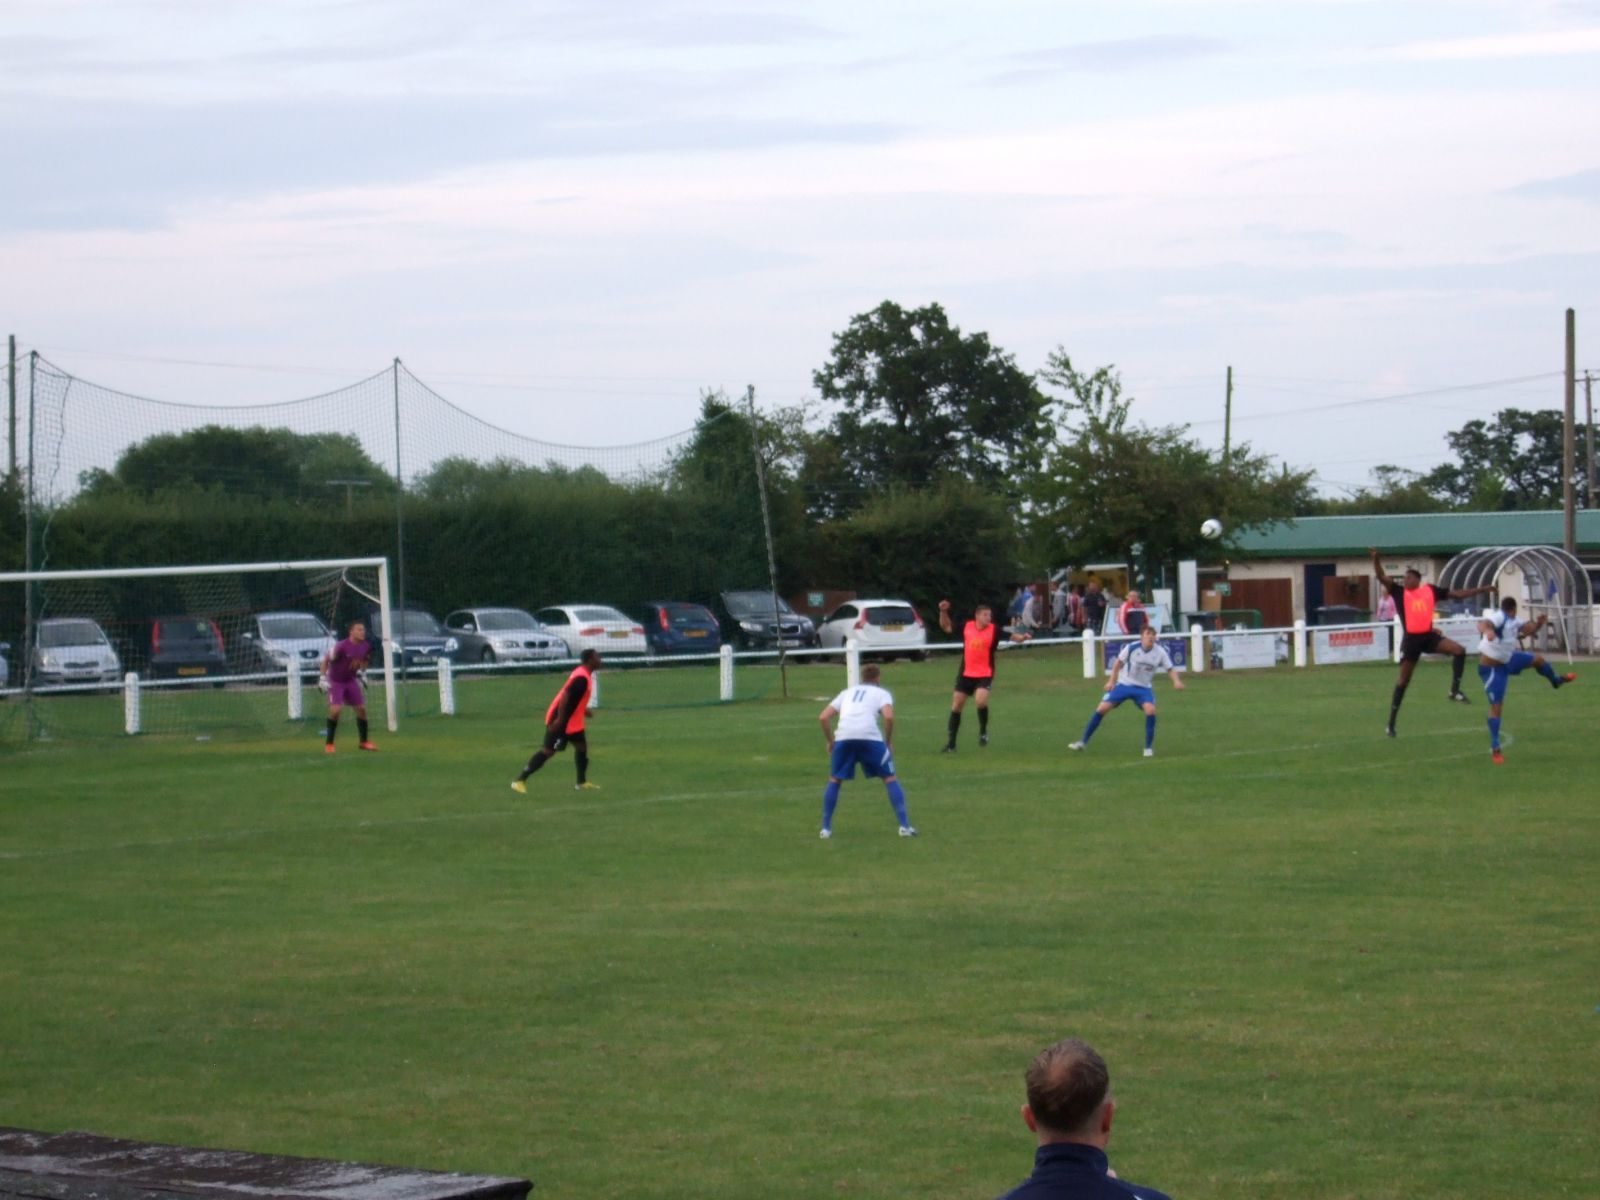 Action from the match.